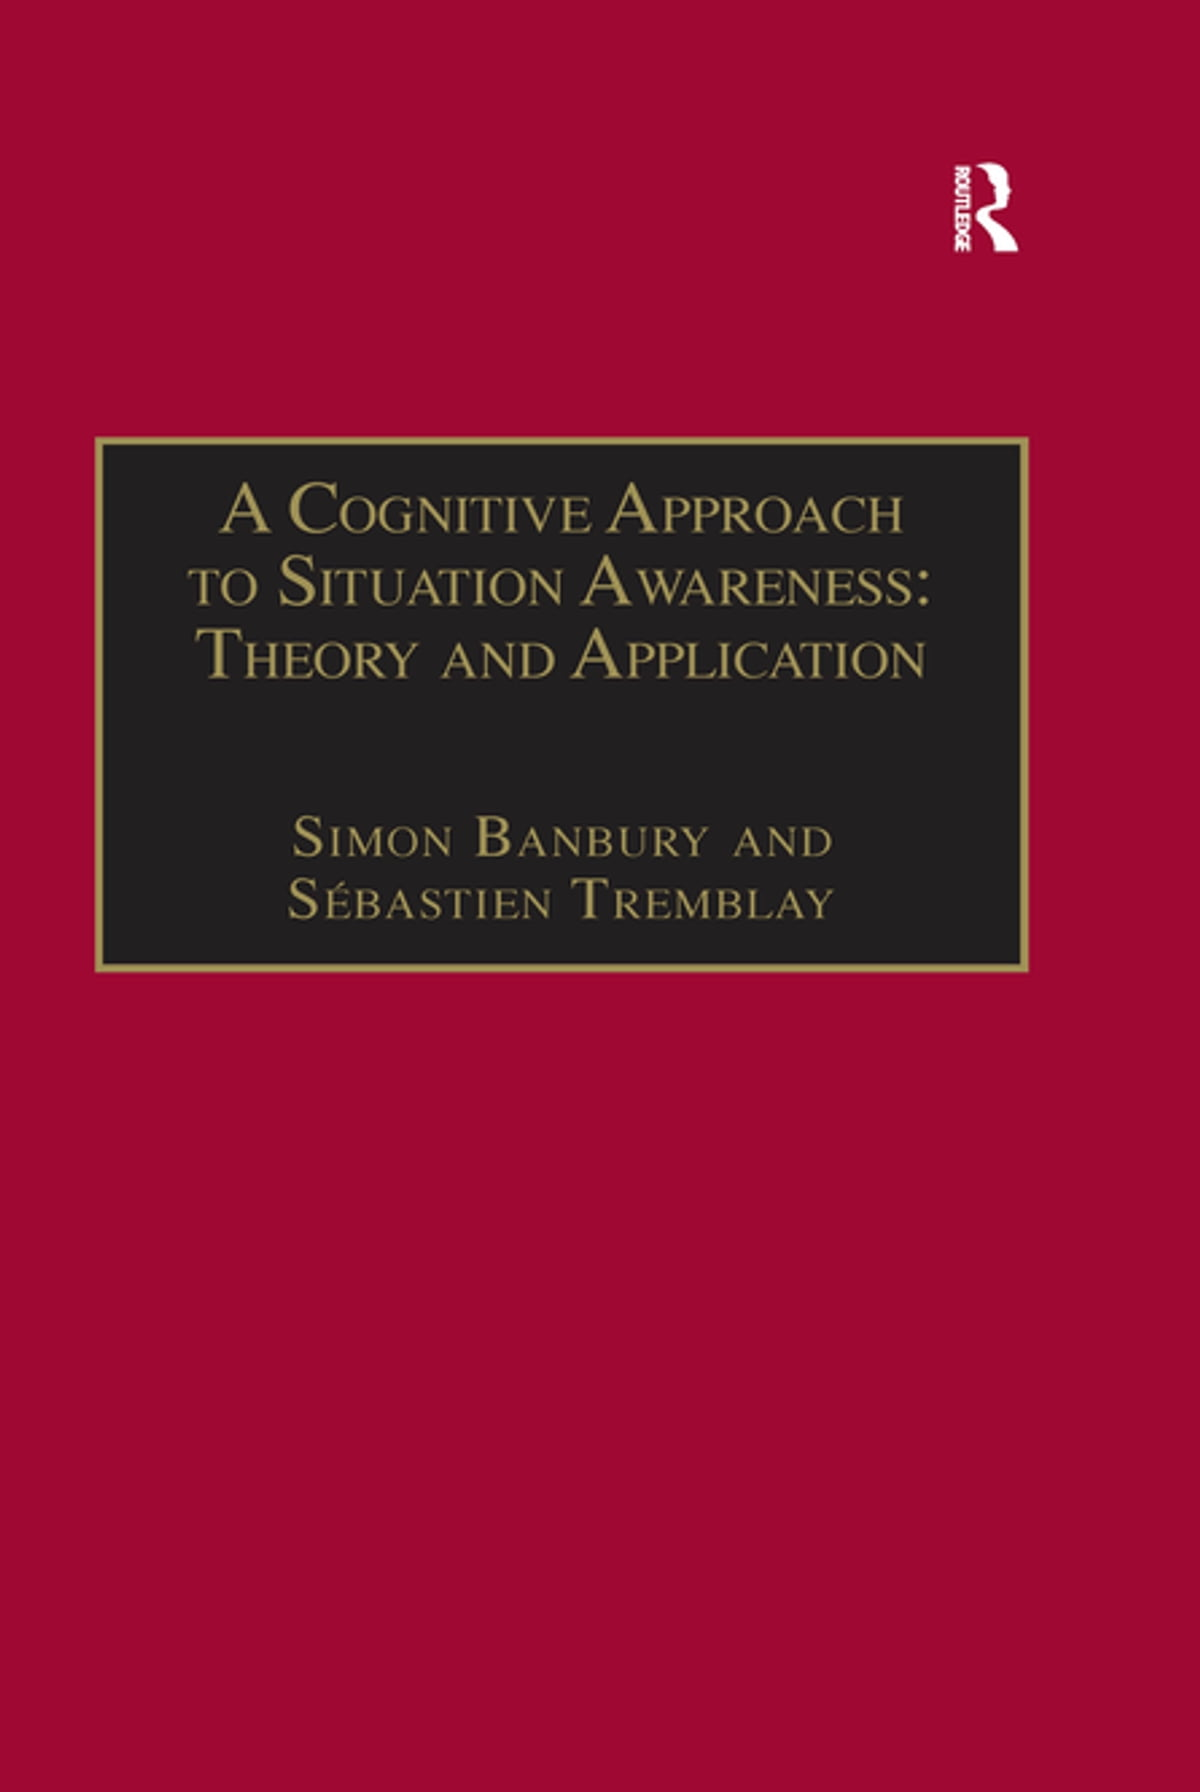 A Cognitive Approach to Situation Awareness: Theory and Application | Rakuten Kobo Australia